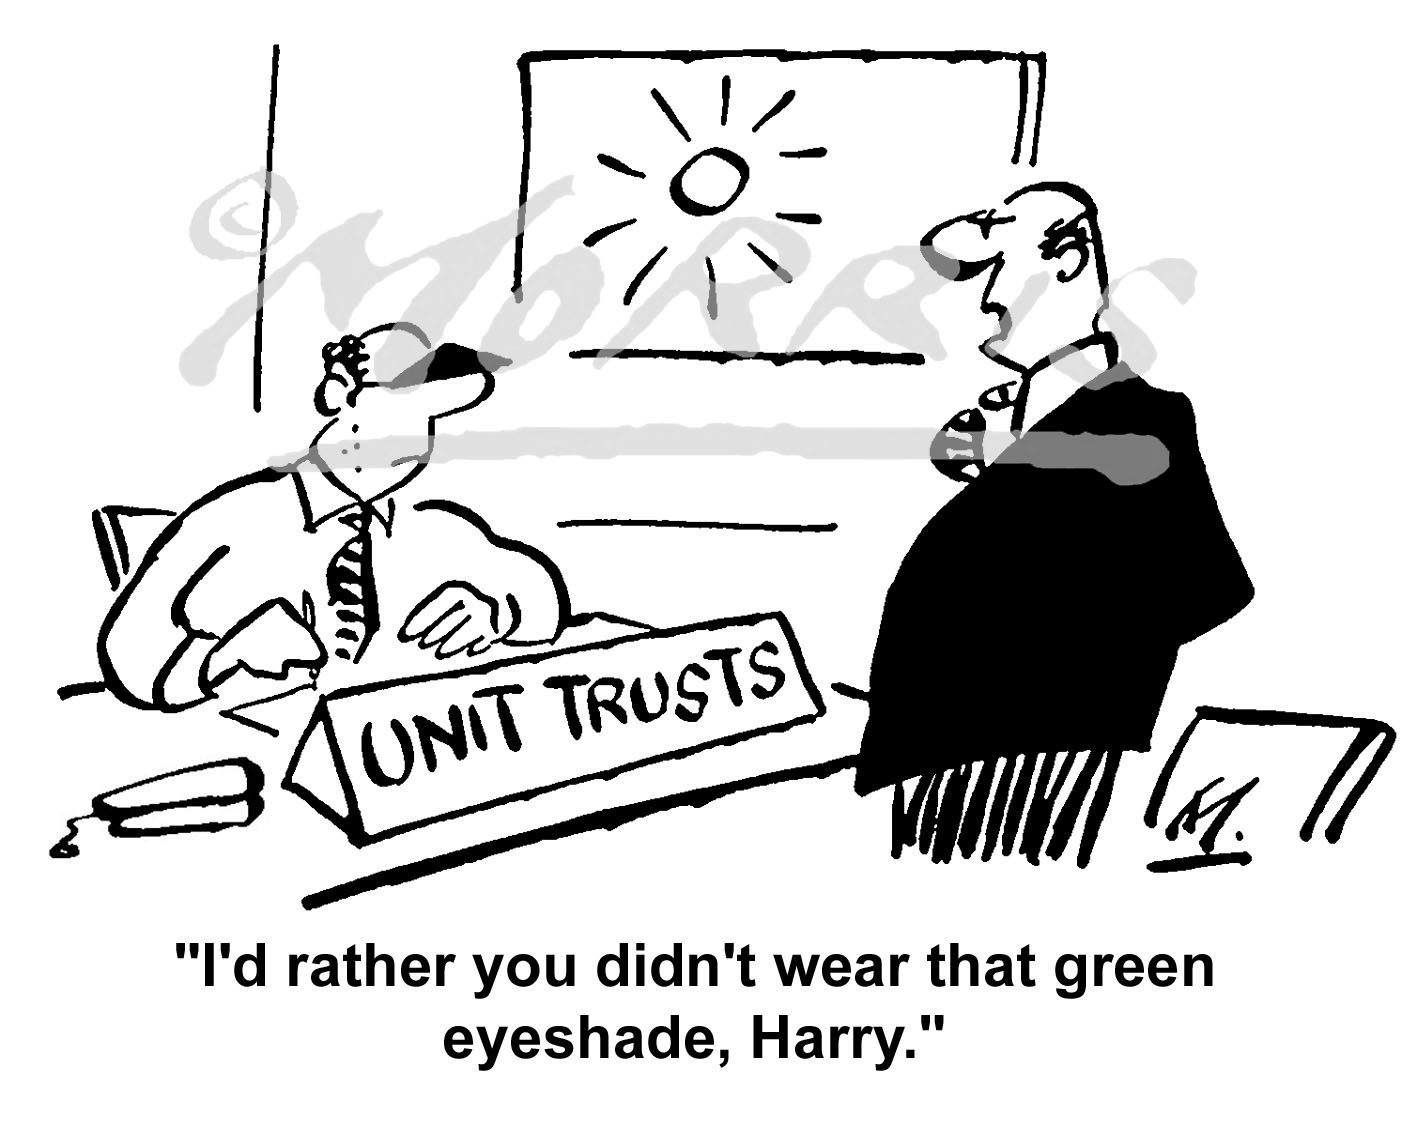 Unit Trust Manager cartoon Ref: 0717bw